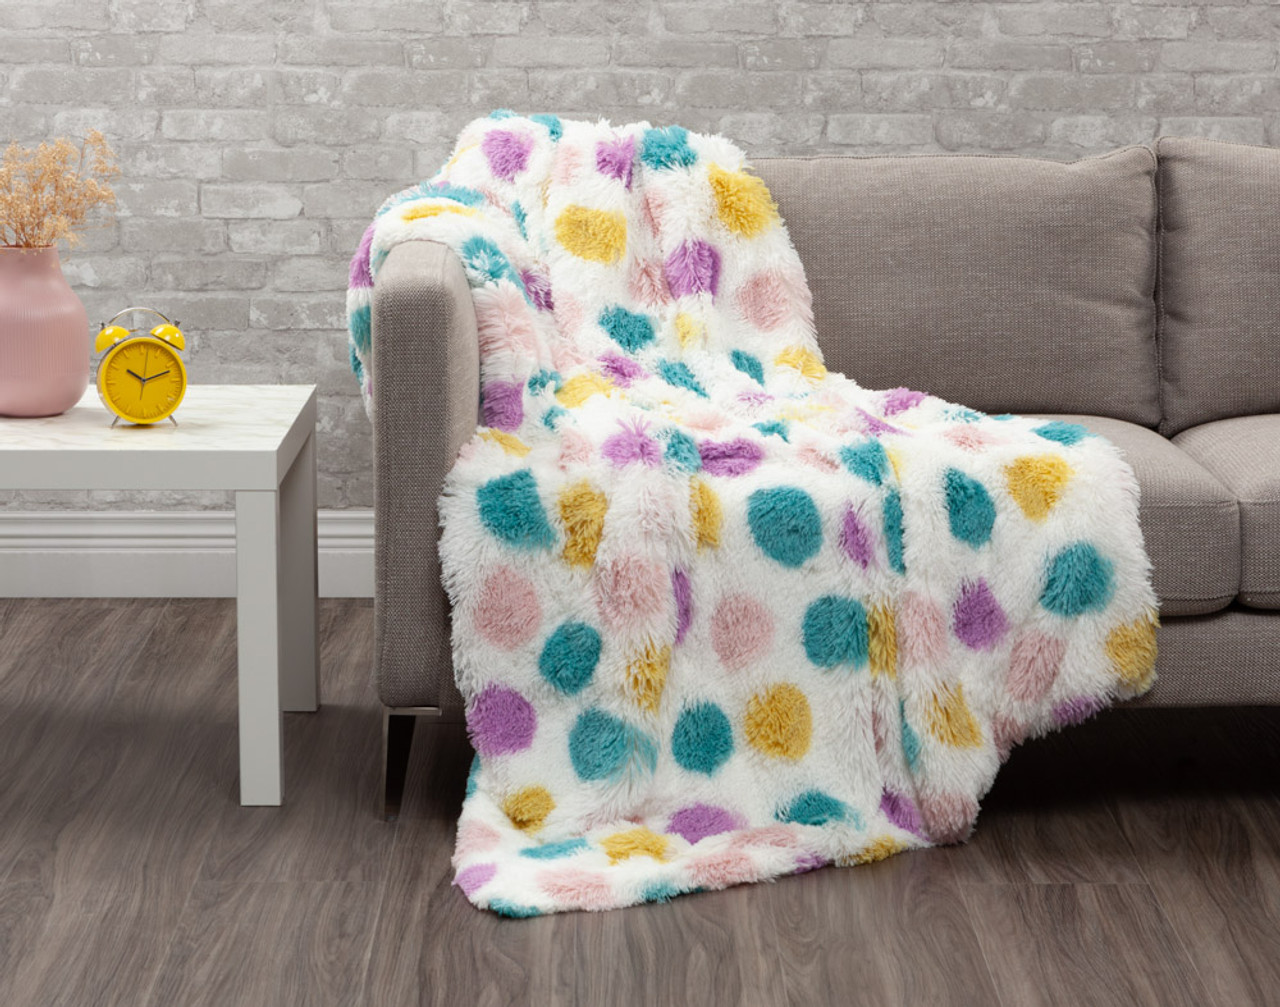 Our Frosted Shaggy Throw in Dots features purple, pink, blue, and yellow polka dots on a fluffy white background.